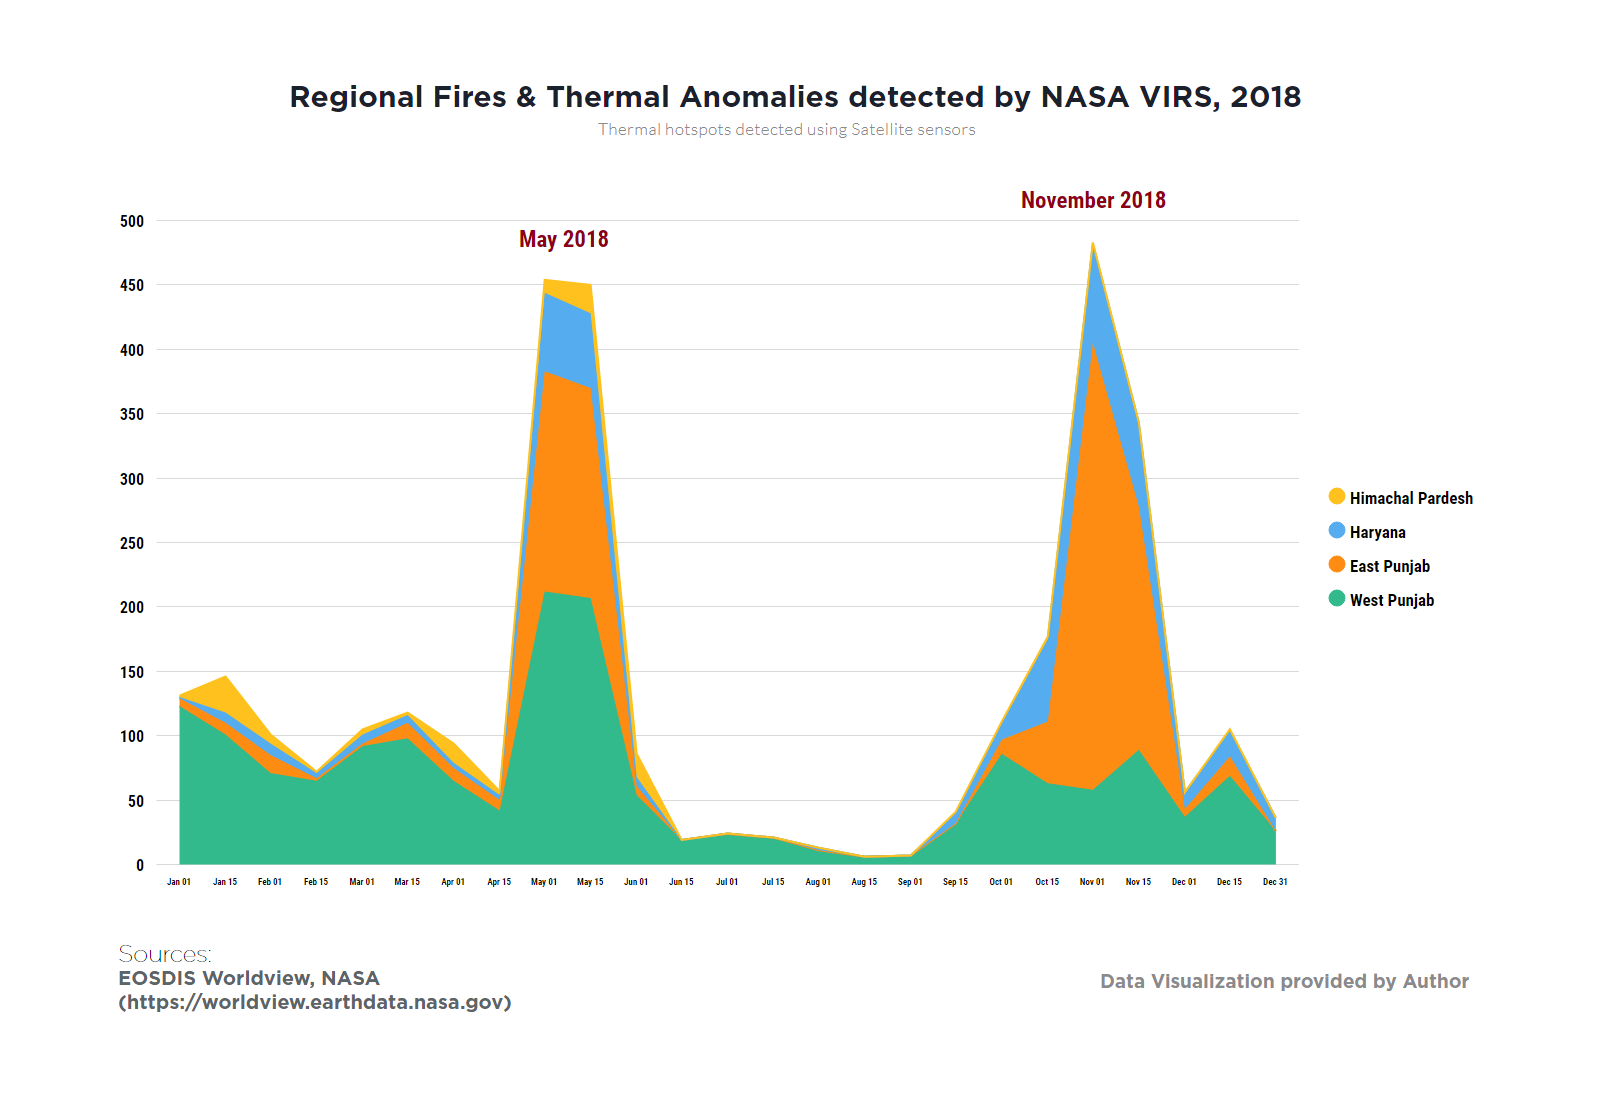 Regional fires and thermal anomalies detected by NASA VIRS in 2018.